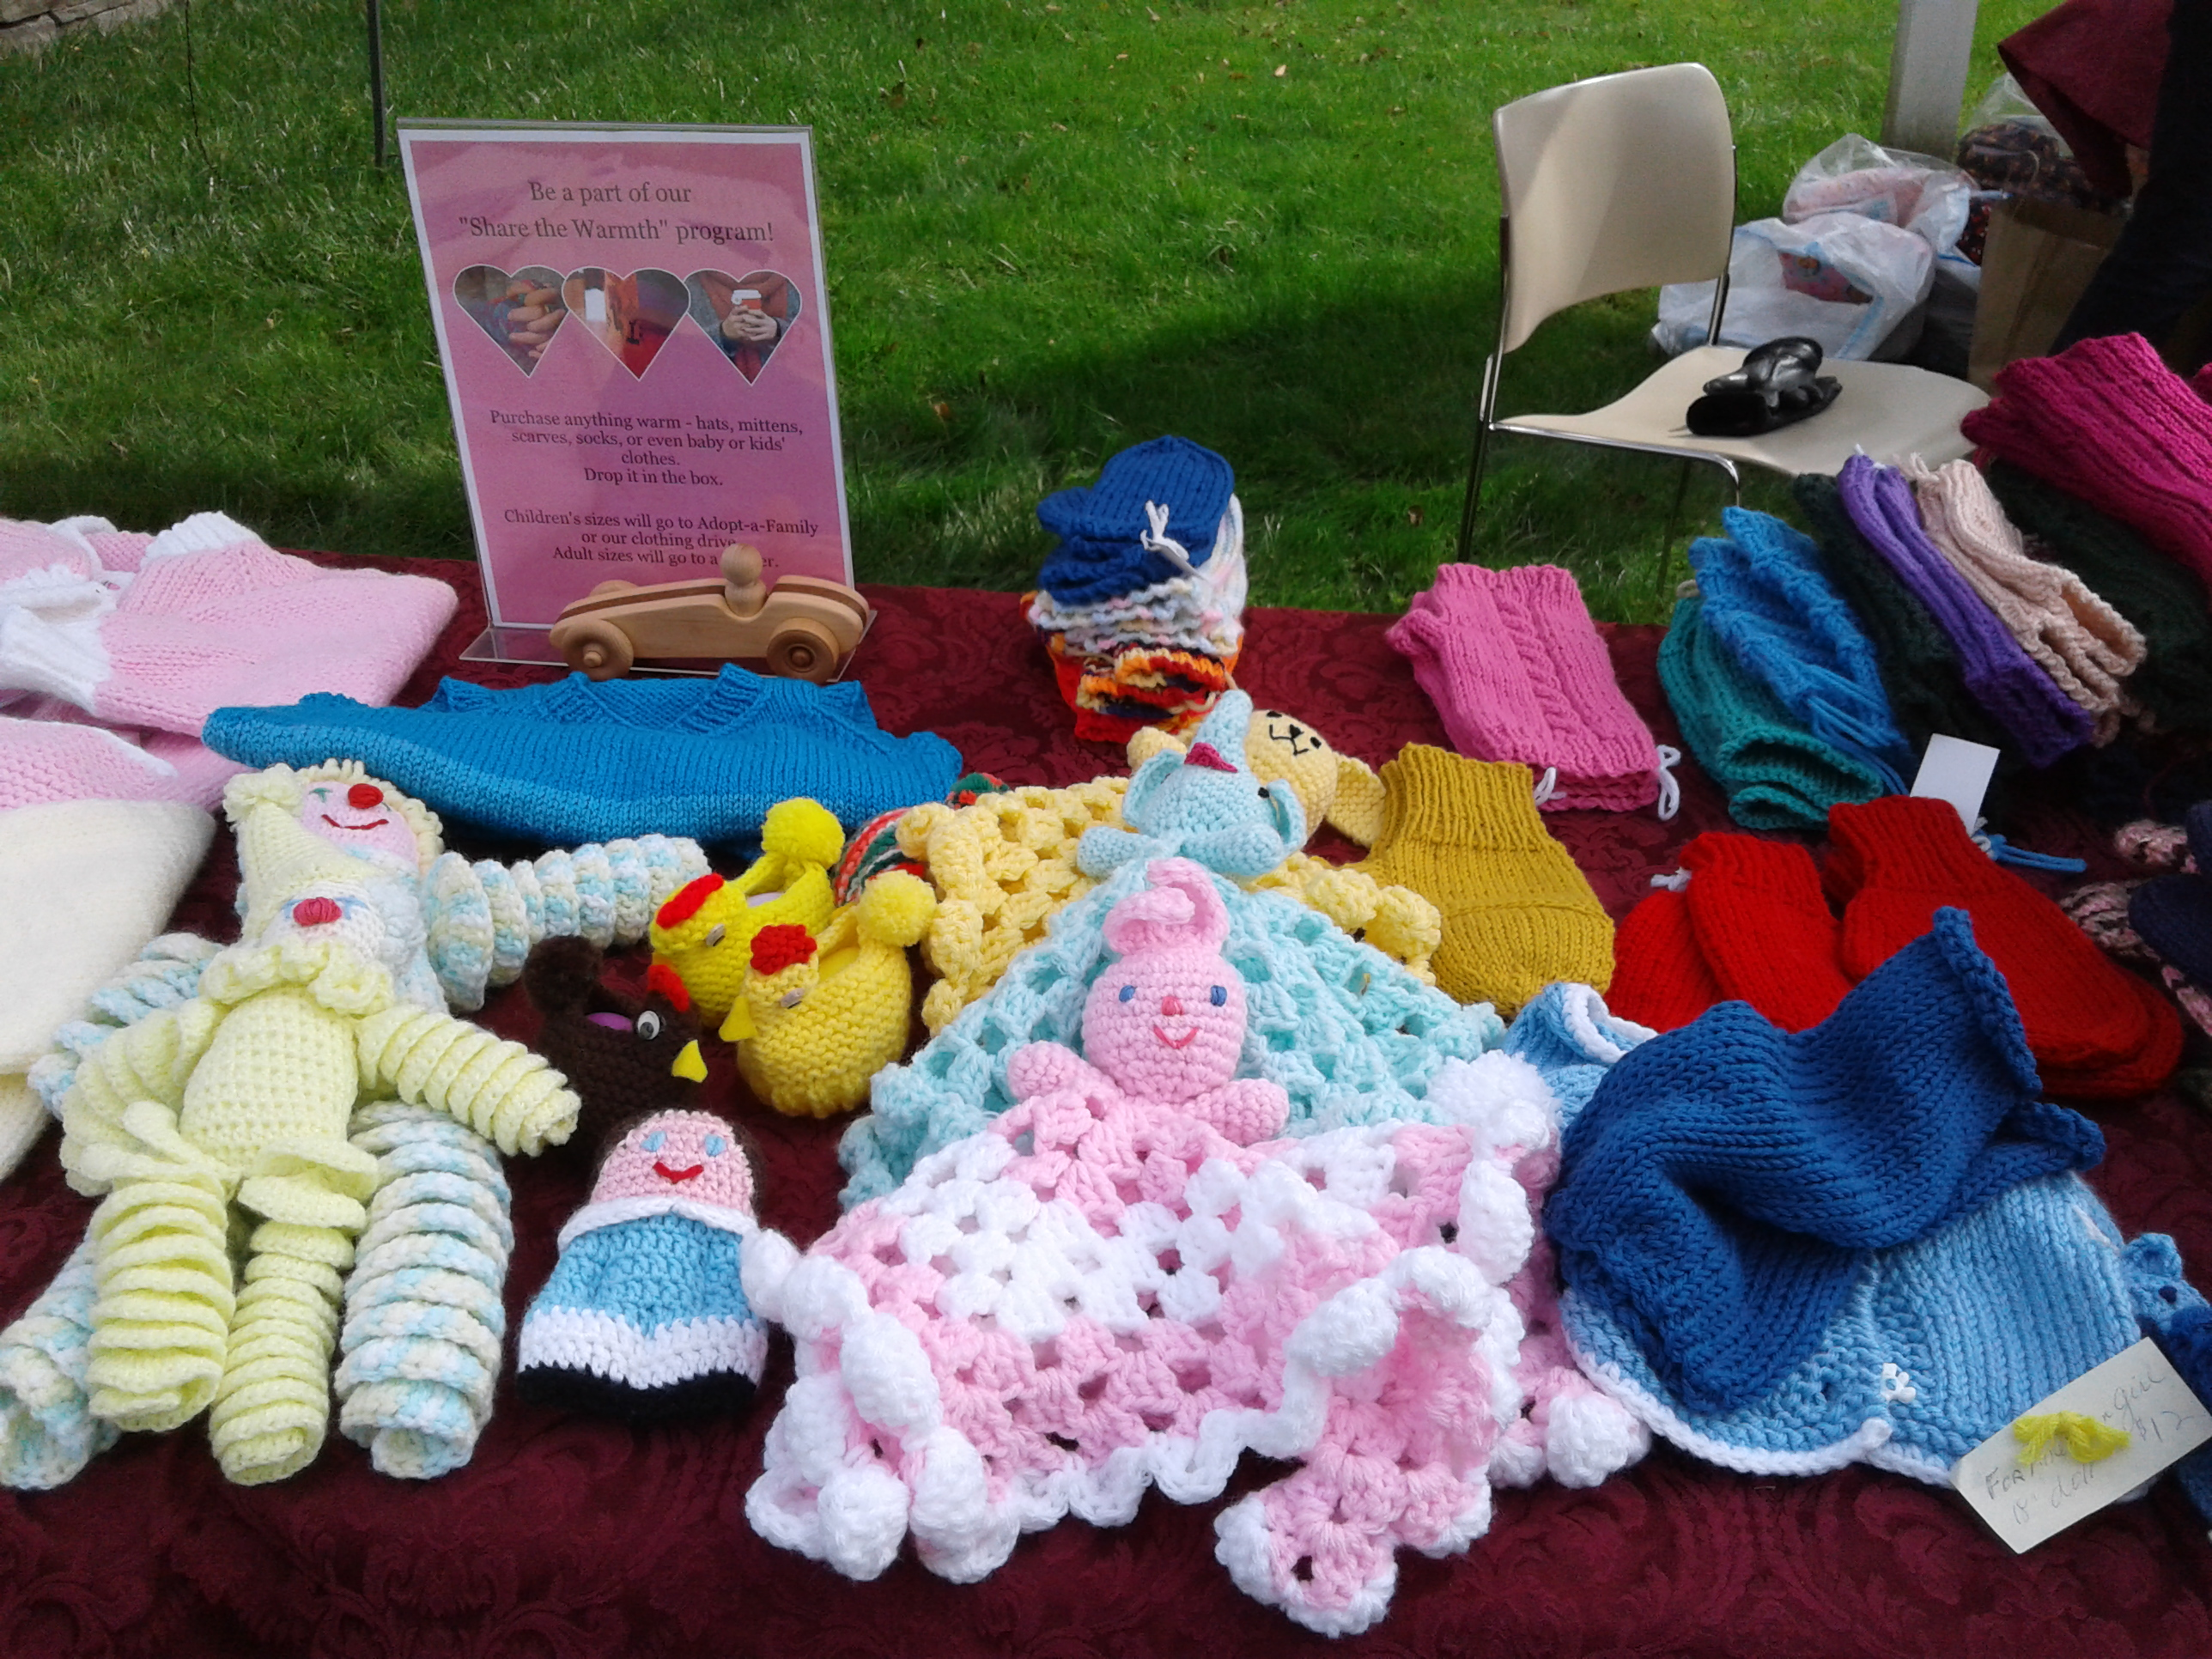 <strong>From toys and sweaters to fingerless gloves and hats, an array of hand-knitted items was laid out on a table, waiting to be bought and loved.<em>Photo by Kaitlin Lyle</em></strong>